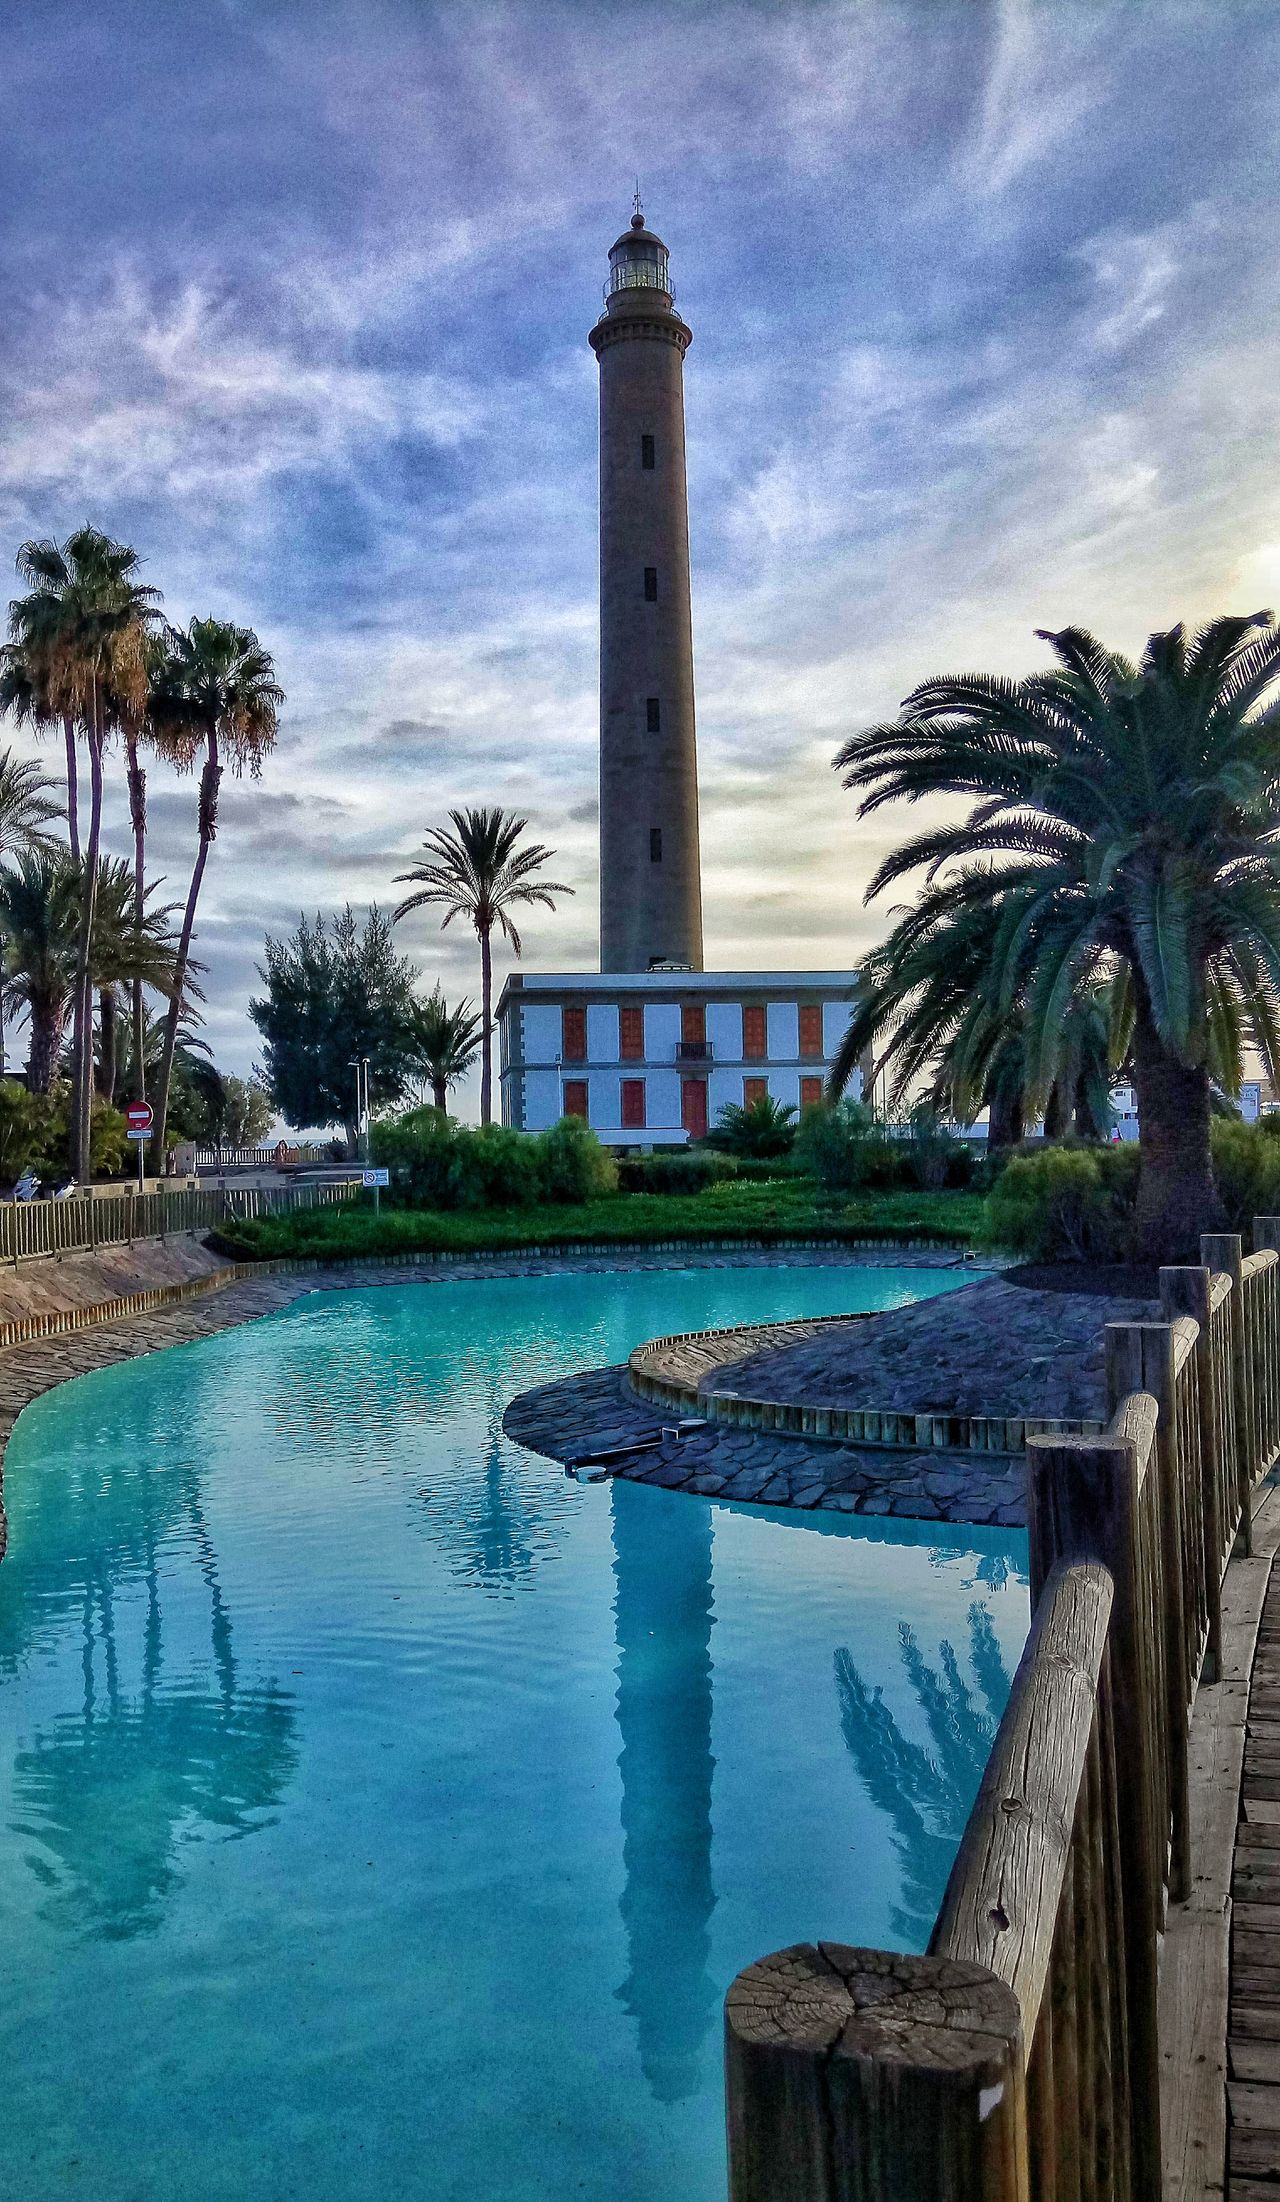 Reflection. Architecture Building Exterior Built Structure Clock Clock Tower Cloud - Sky Day Nature No People Outdoors Palm Tree Sky Swimming Pool Tower Travel Travel Destinations Tree Water